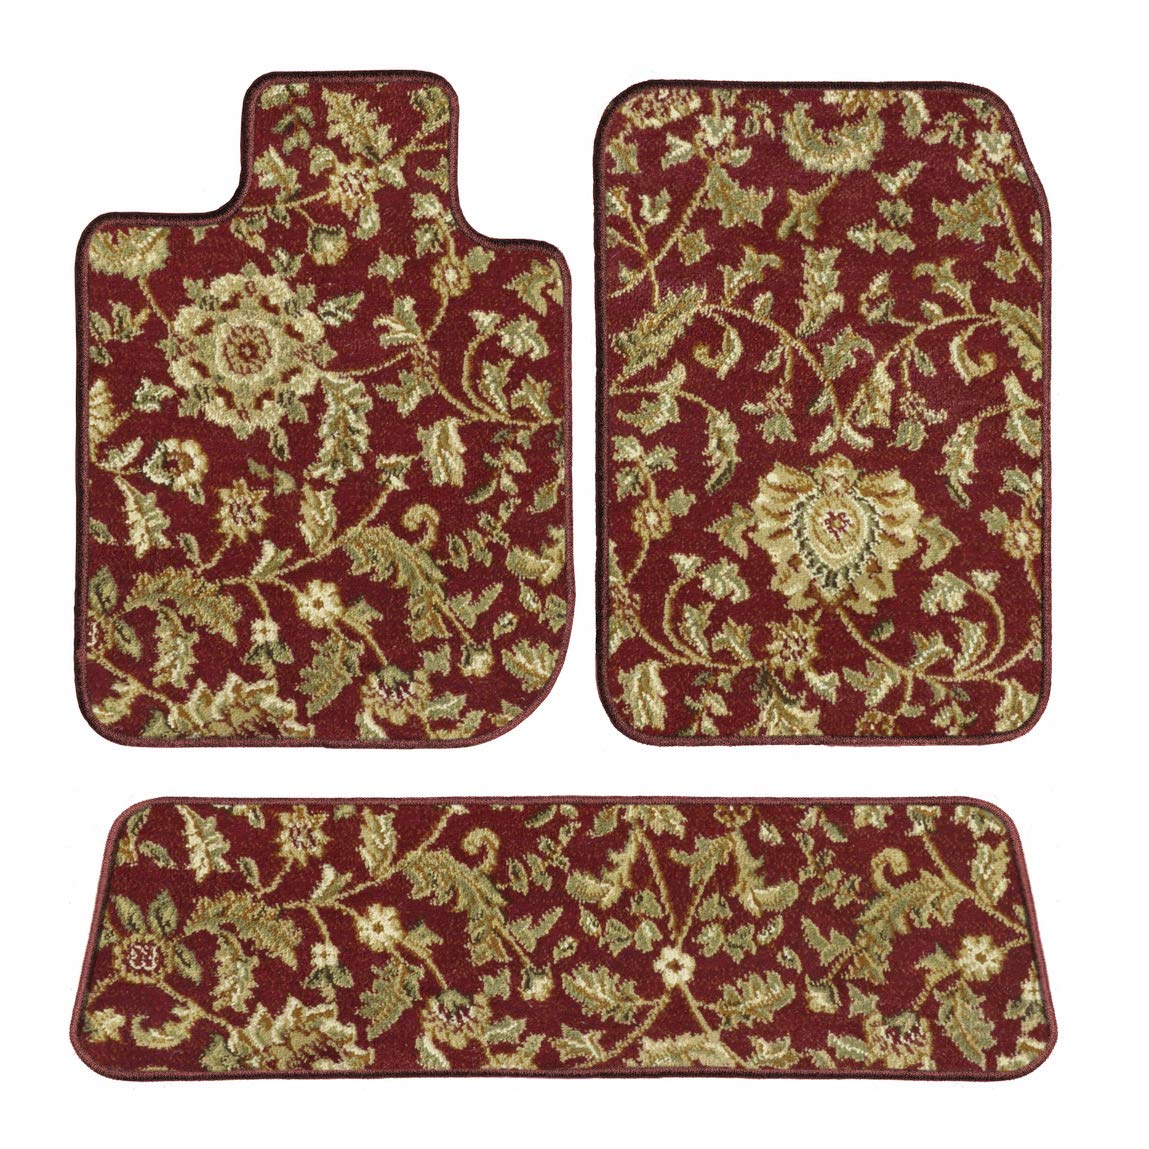 1994 1997 2001 Ford Explorer 4 Door Red Oriental Driver 1993 1998 1992 1995 1999 Passenger /& Rear 2000 GGBAILEY D4739A-S2B-RD-IS Custom Fit Automotive Carpet Floor Mats for 1991 1996